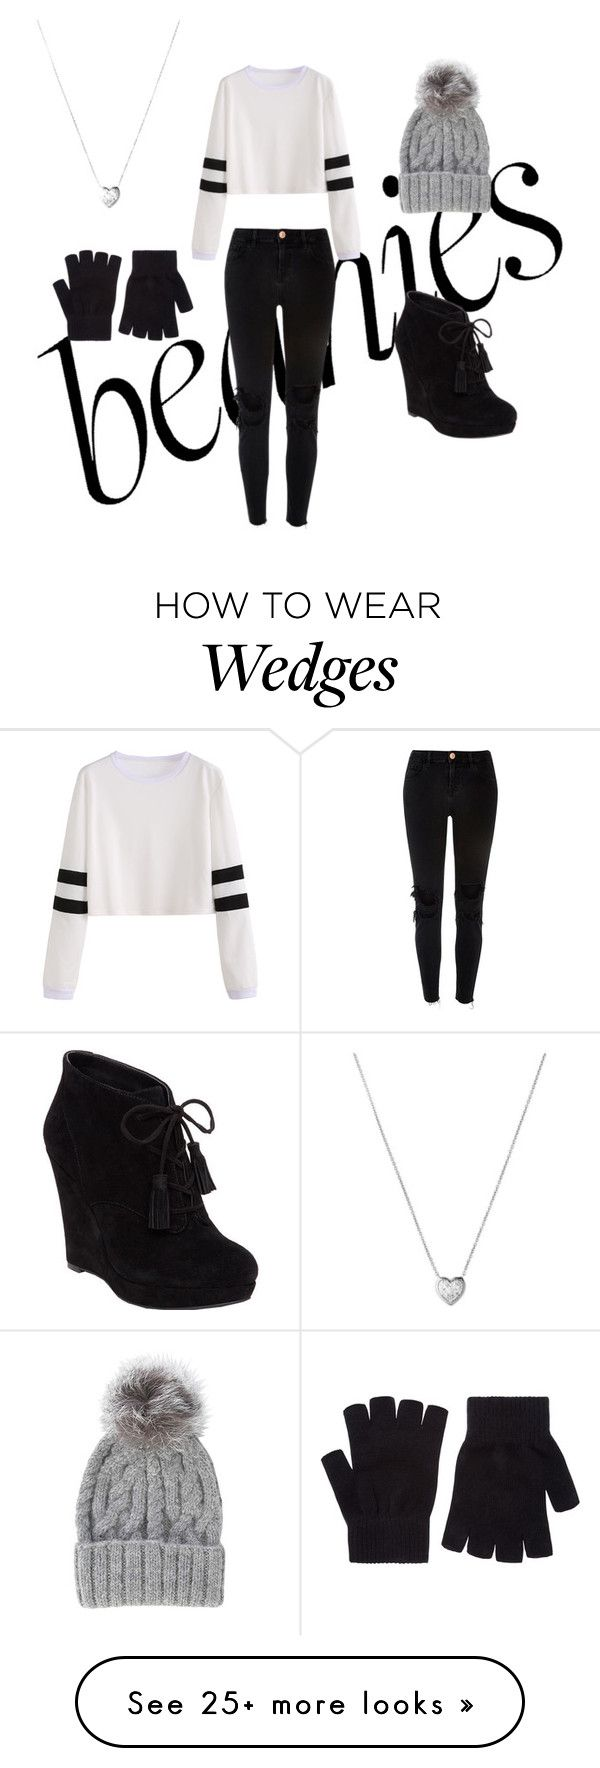 """beanie!!!"" by izzy6335 on Polyvore featuring Jessica Simpson, Links of London, Eugenia Kim, River Island and Accessorize"